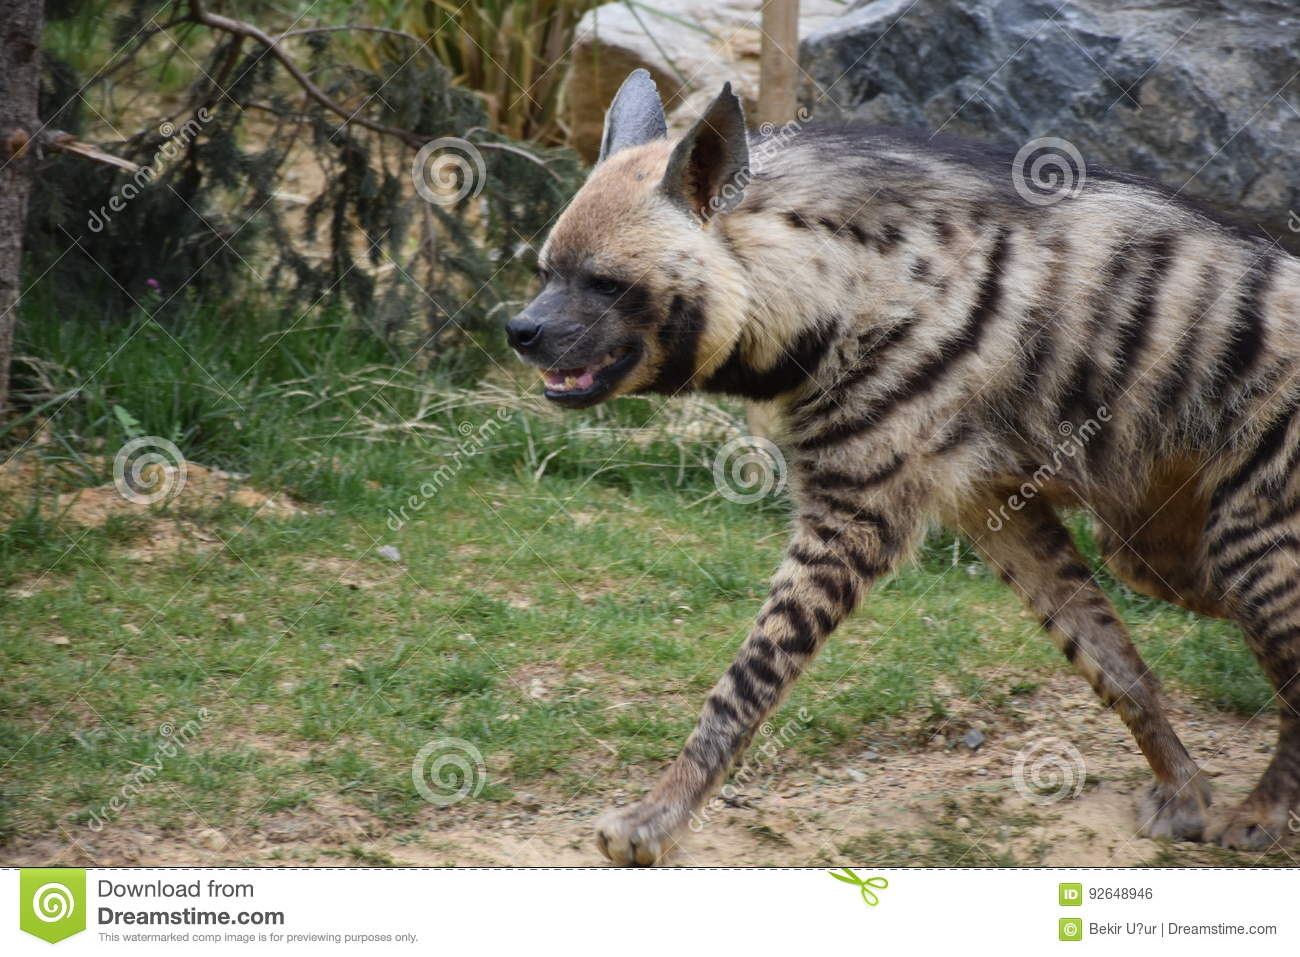 Sırtlan Stock Photo Image Of Mutlu Zebra Grizzlybear 92648946